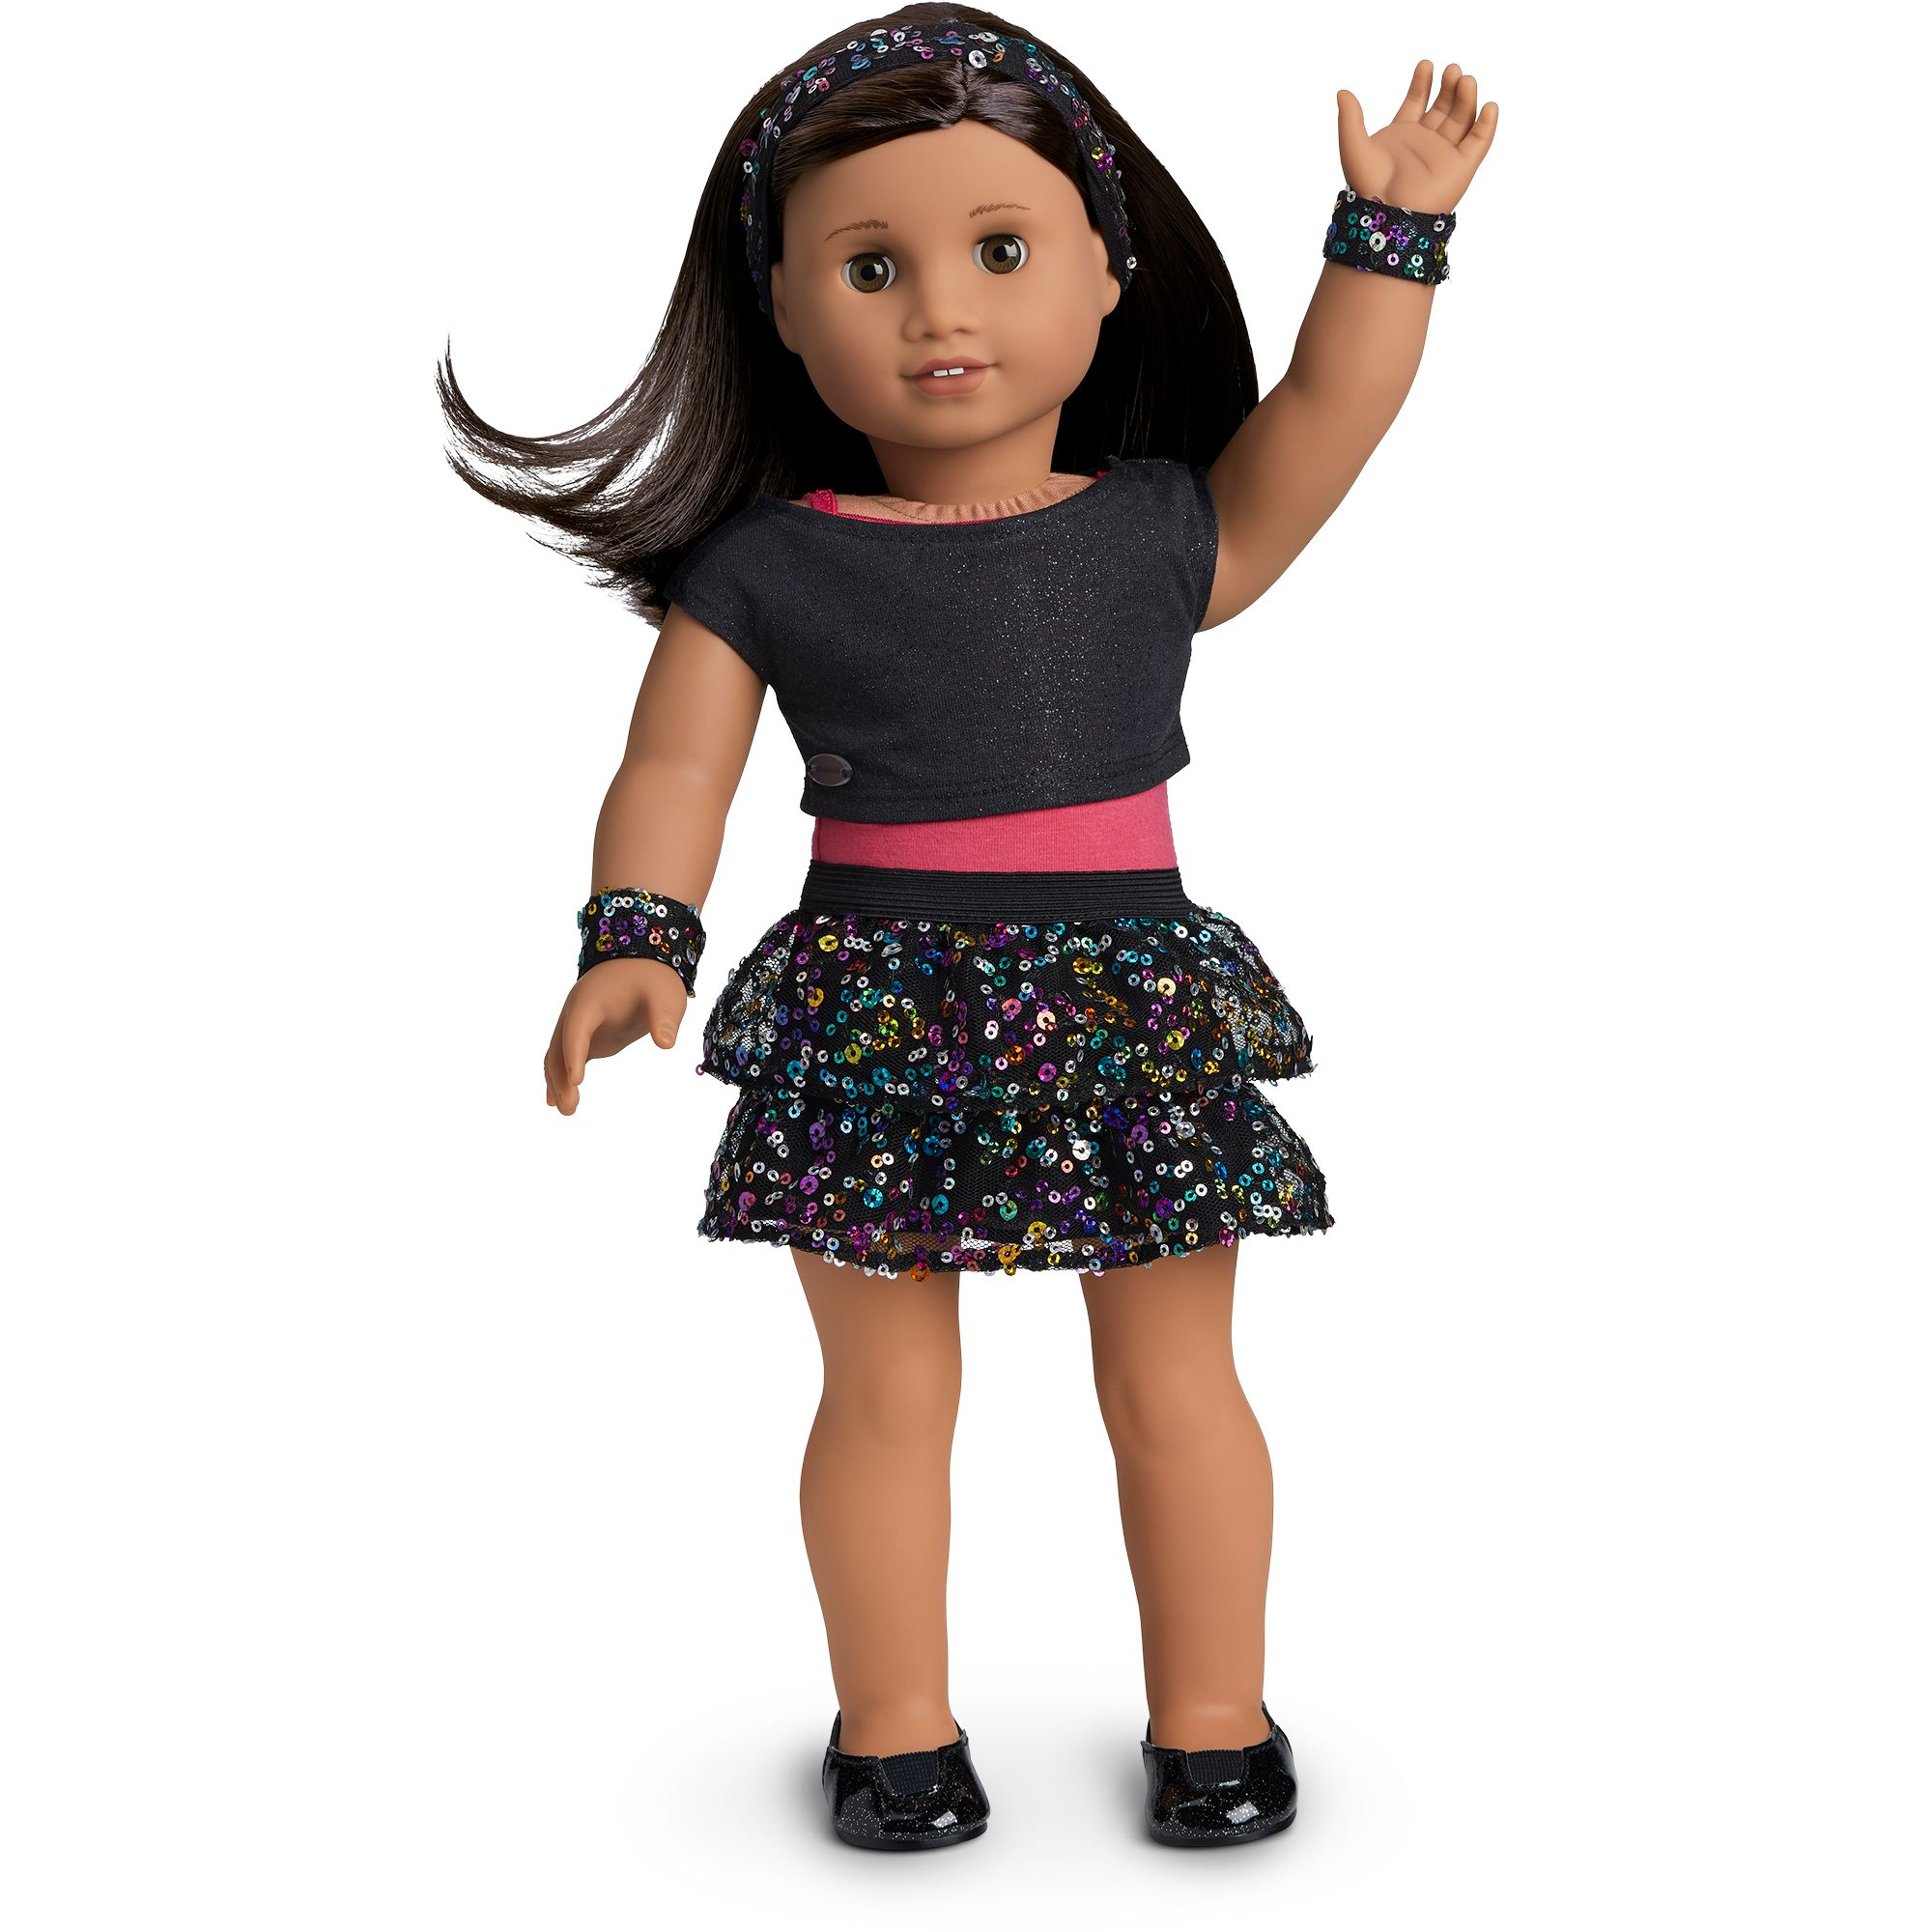 Sparkling Star Dance Outfit for 5-inch Dolls